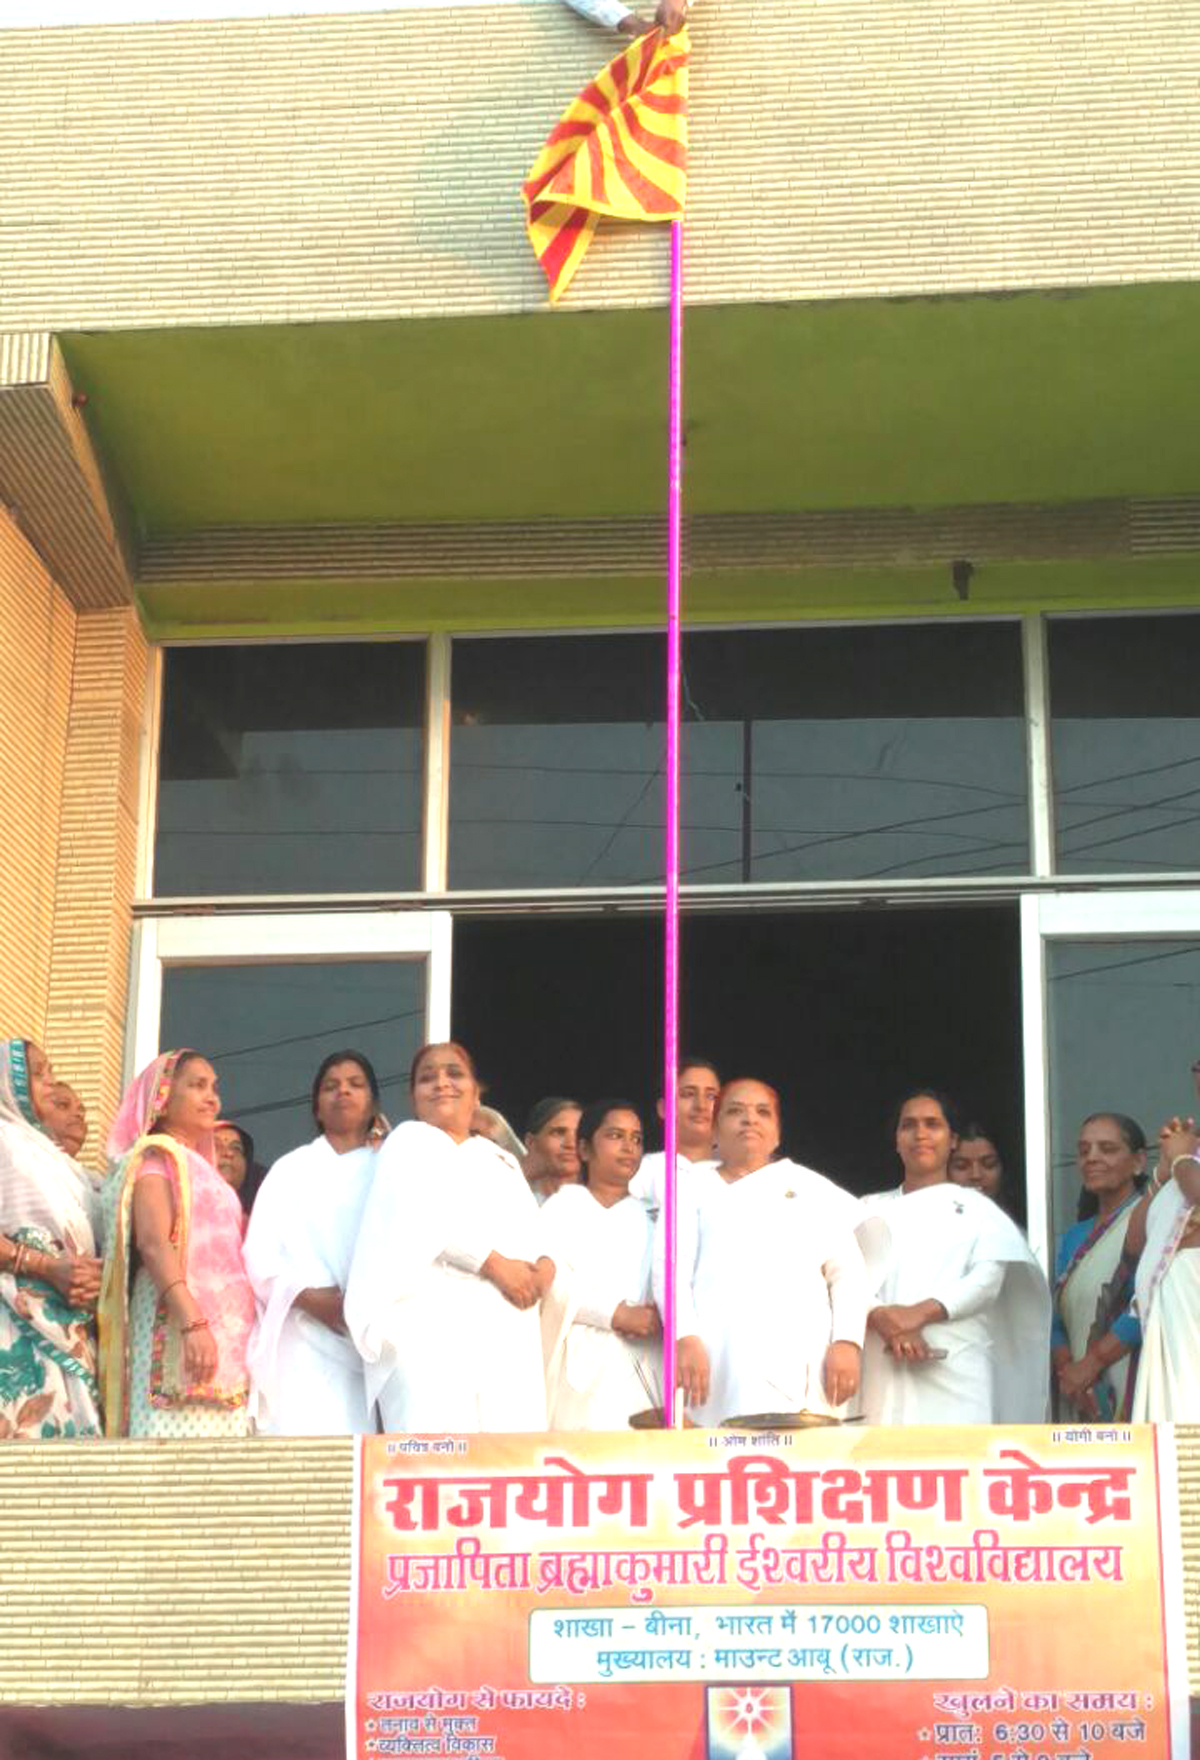 Inauguration of New Rajayoga Centre at Khimlasa